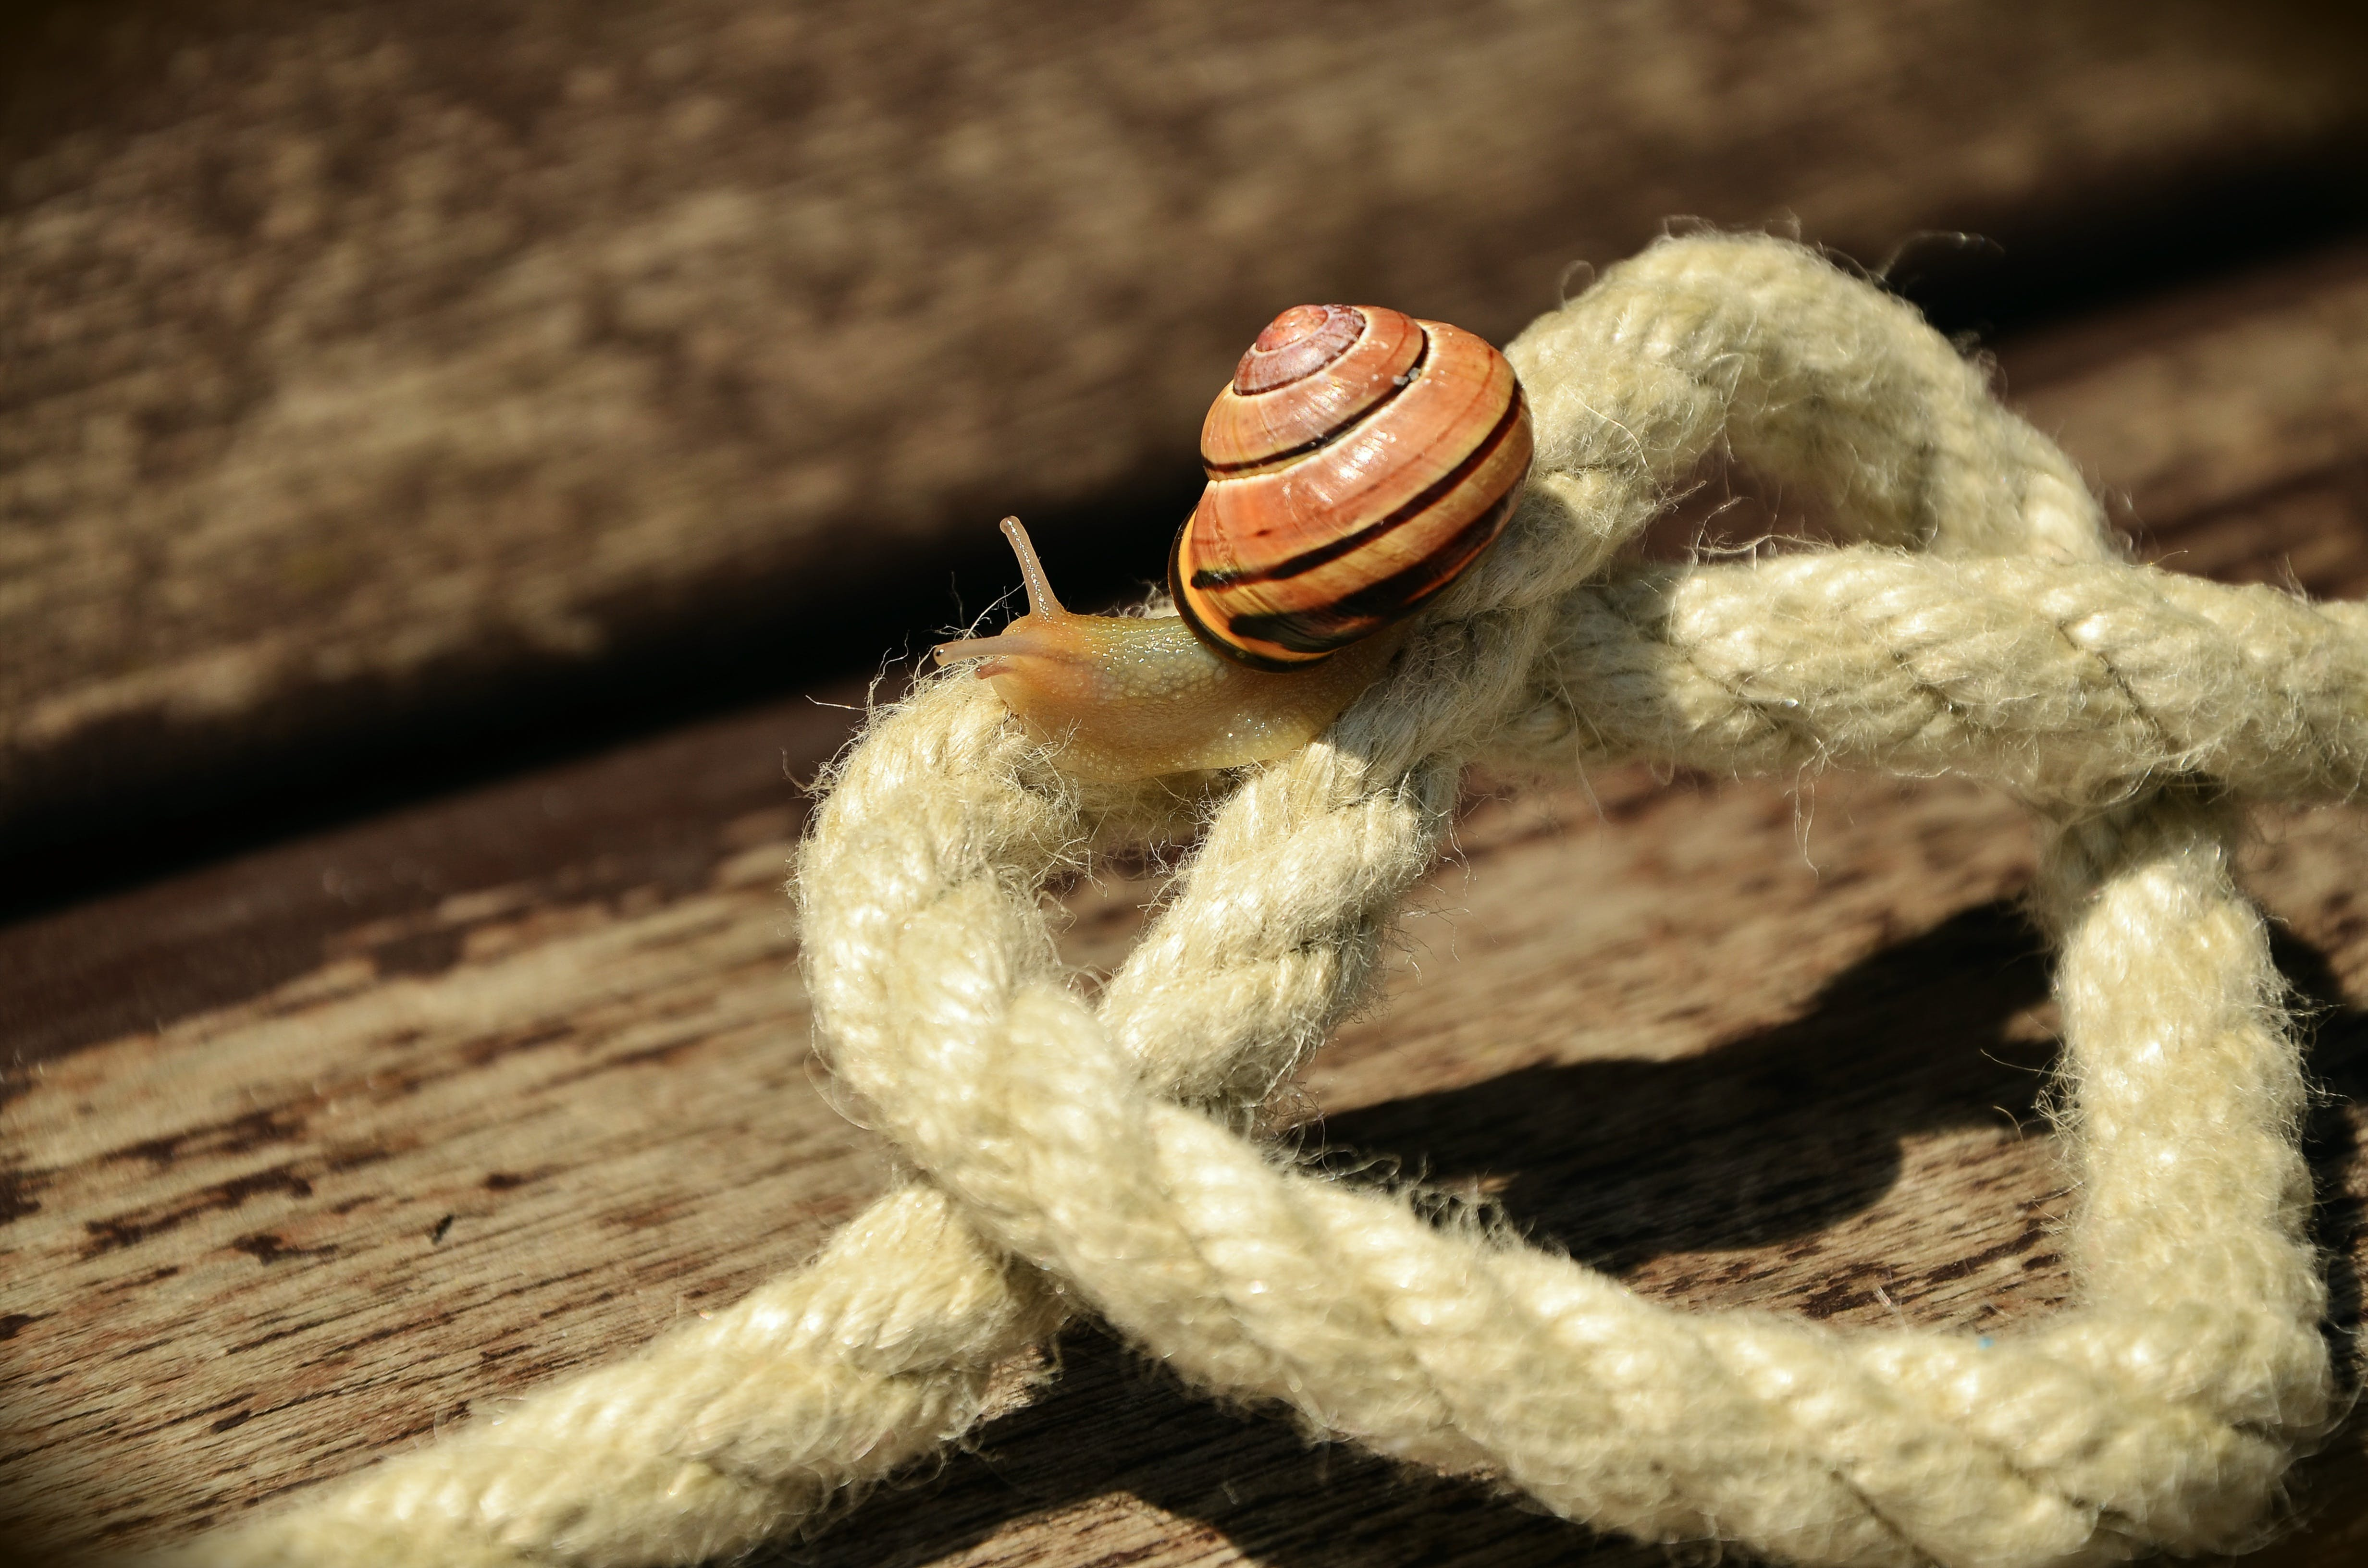 Free stock photo of wood, animal, rope, snail